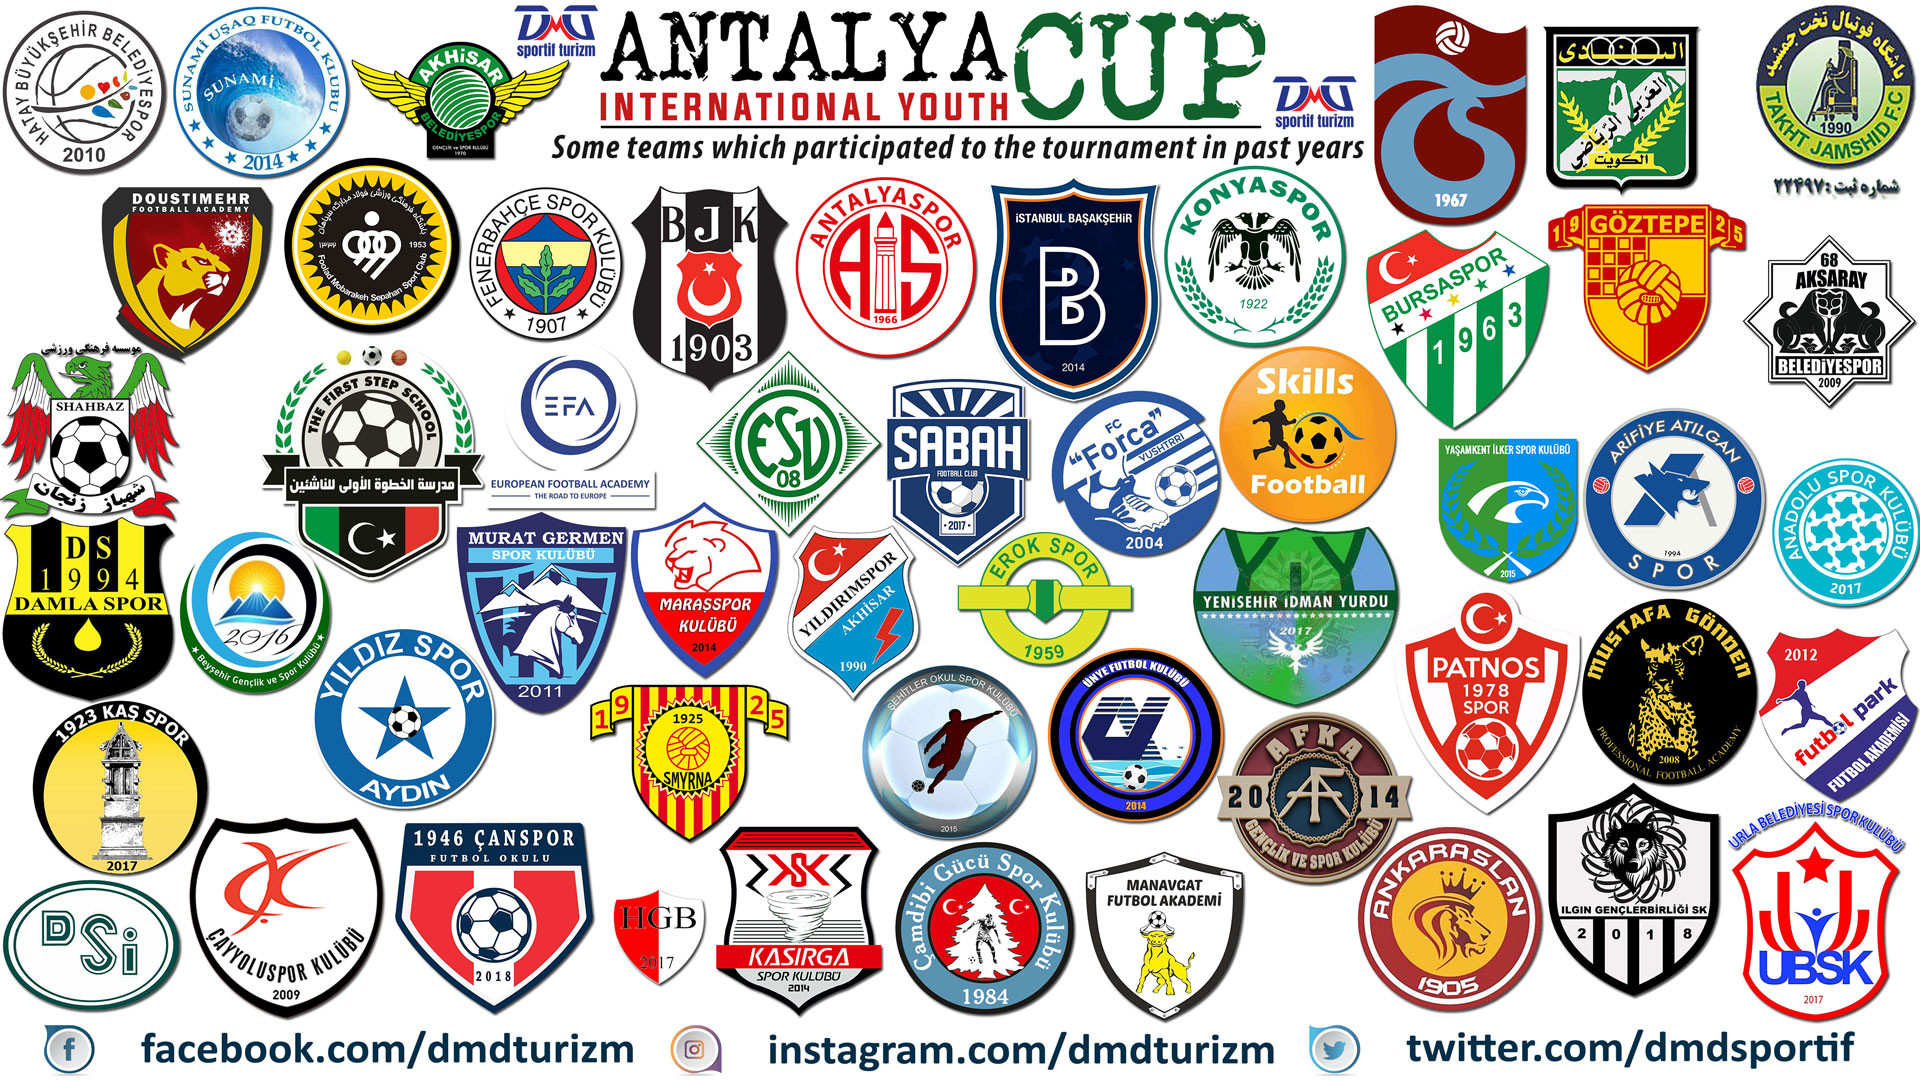 antalya-cup-log-mix-en.jpg